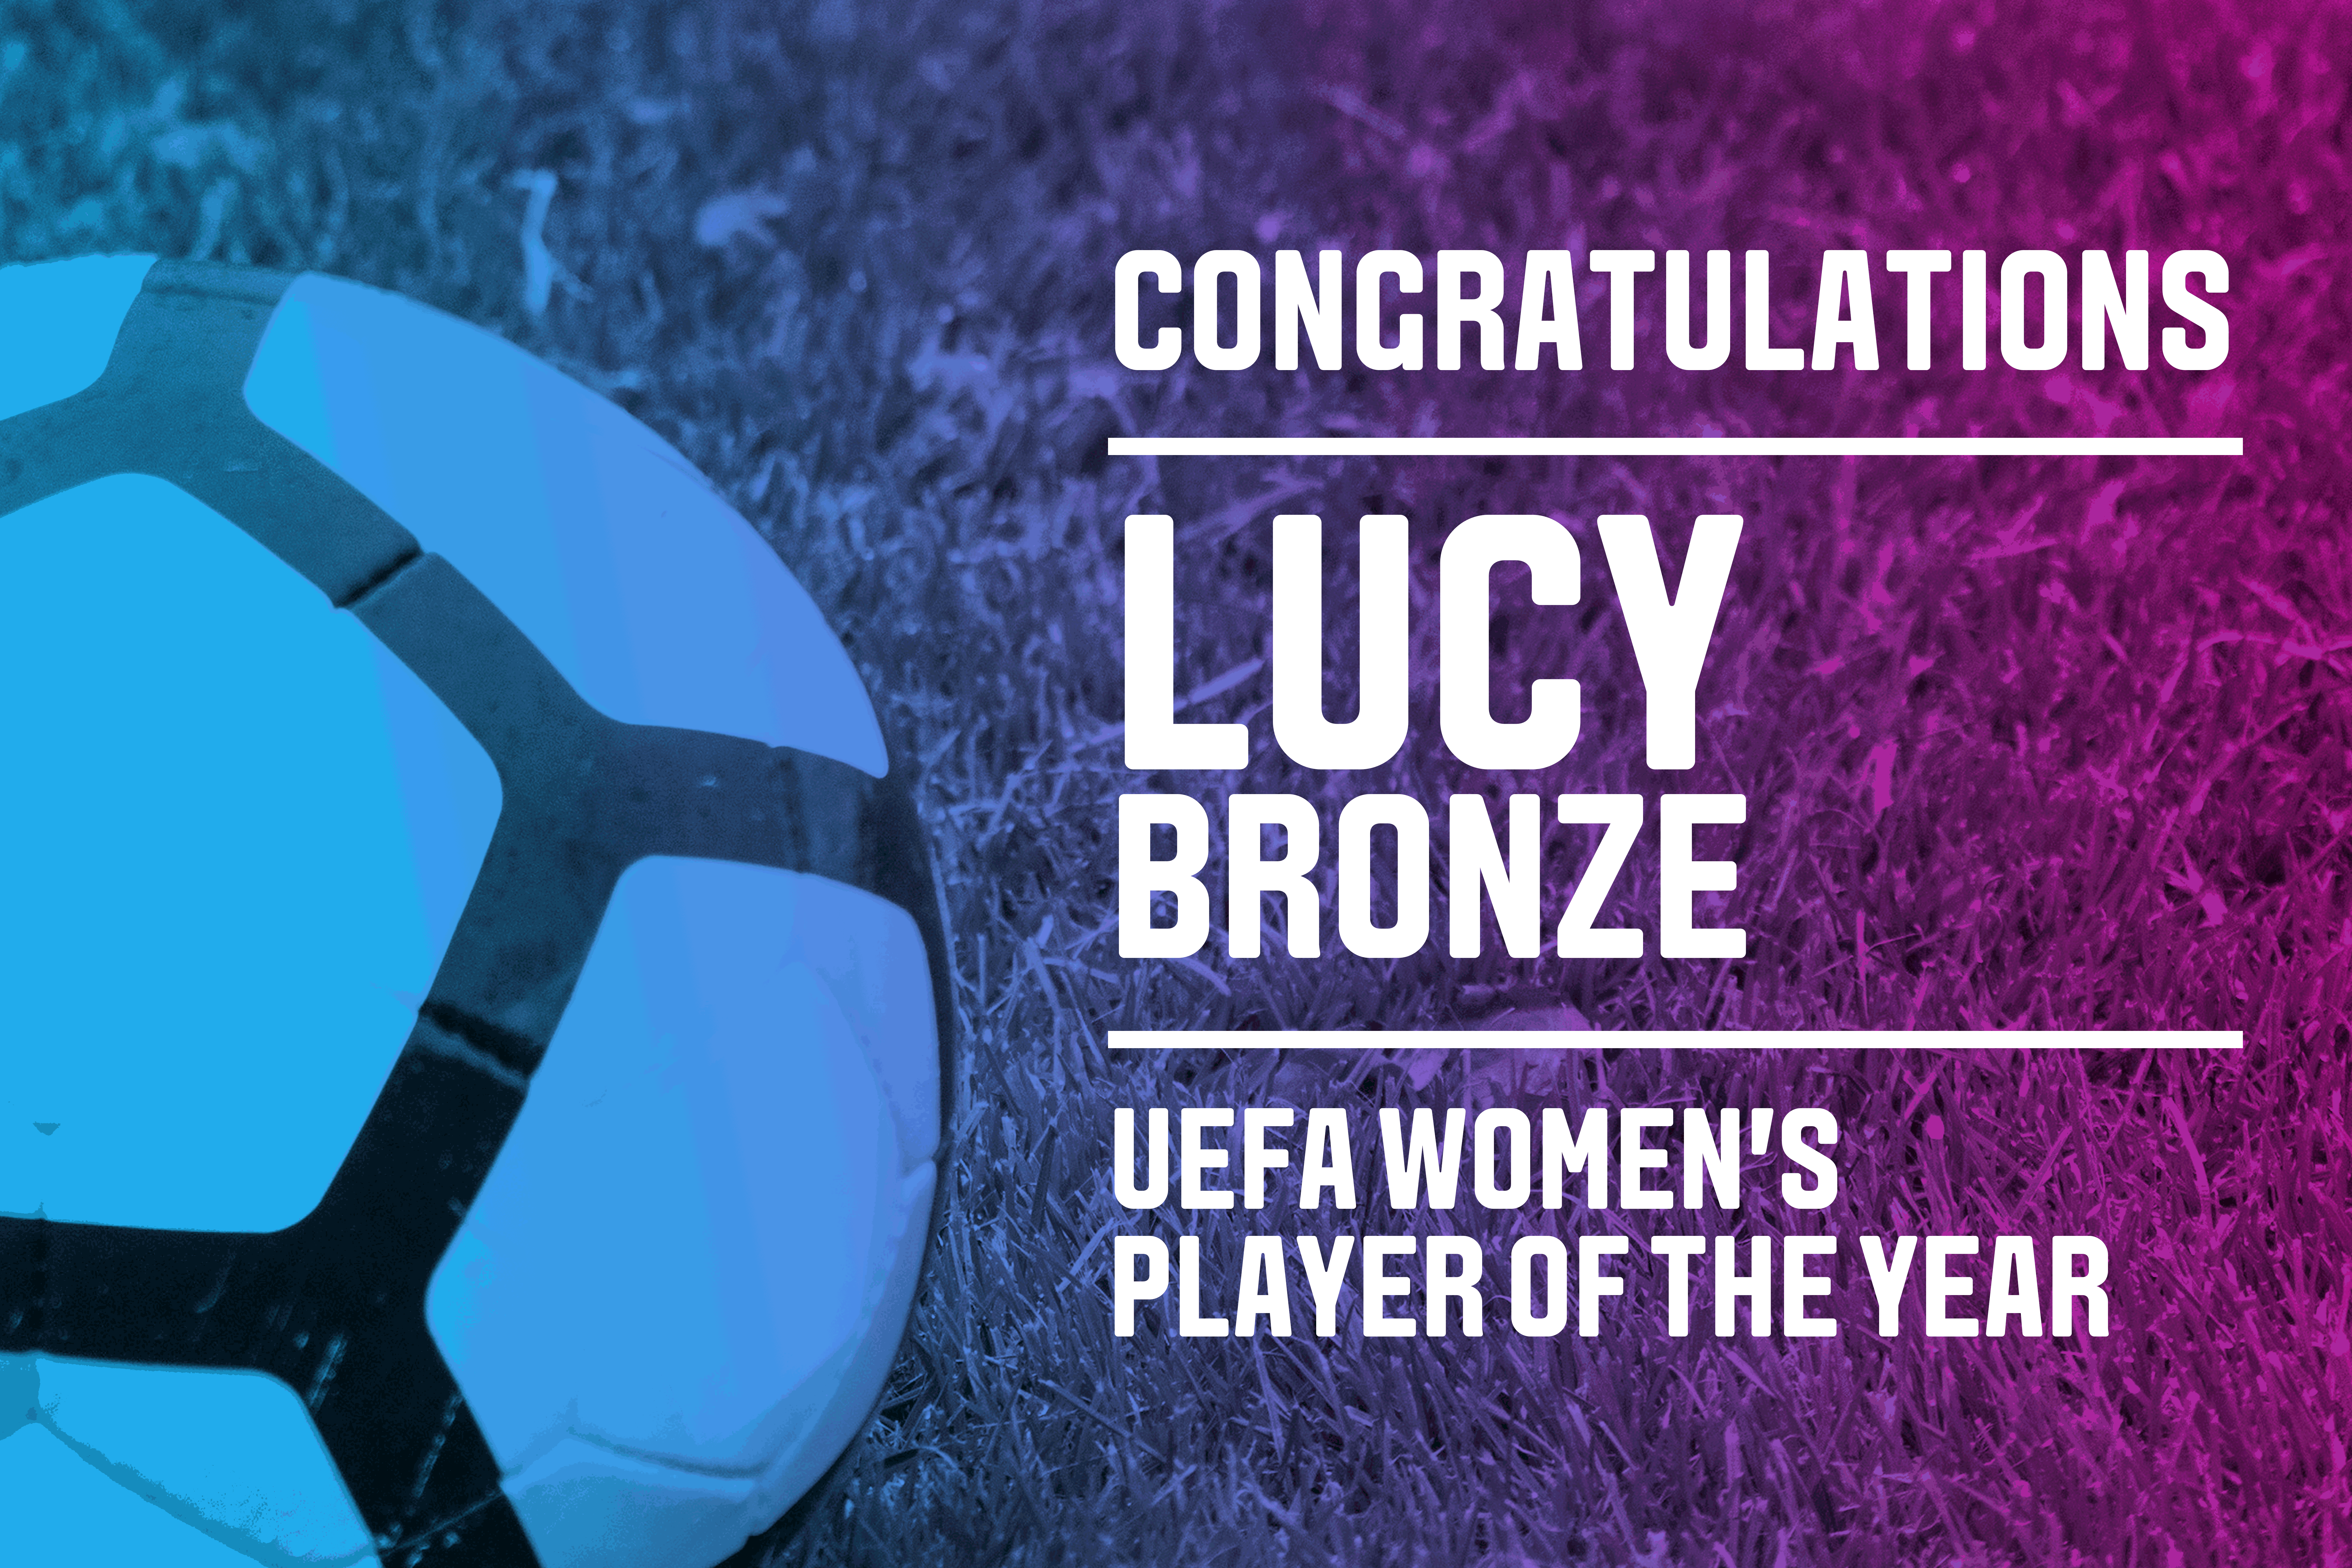 Former Leeds Beckett student named UEFA Women's Player of the Year